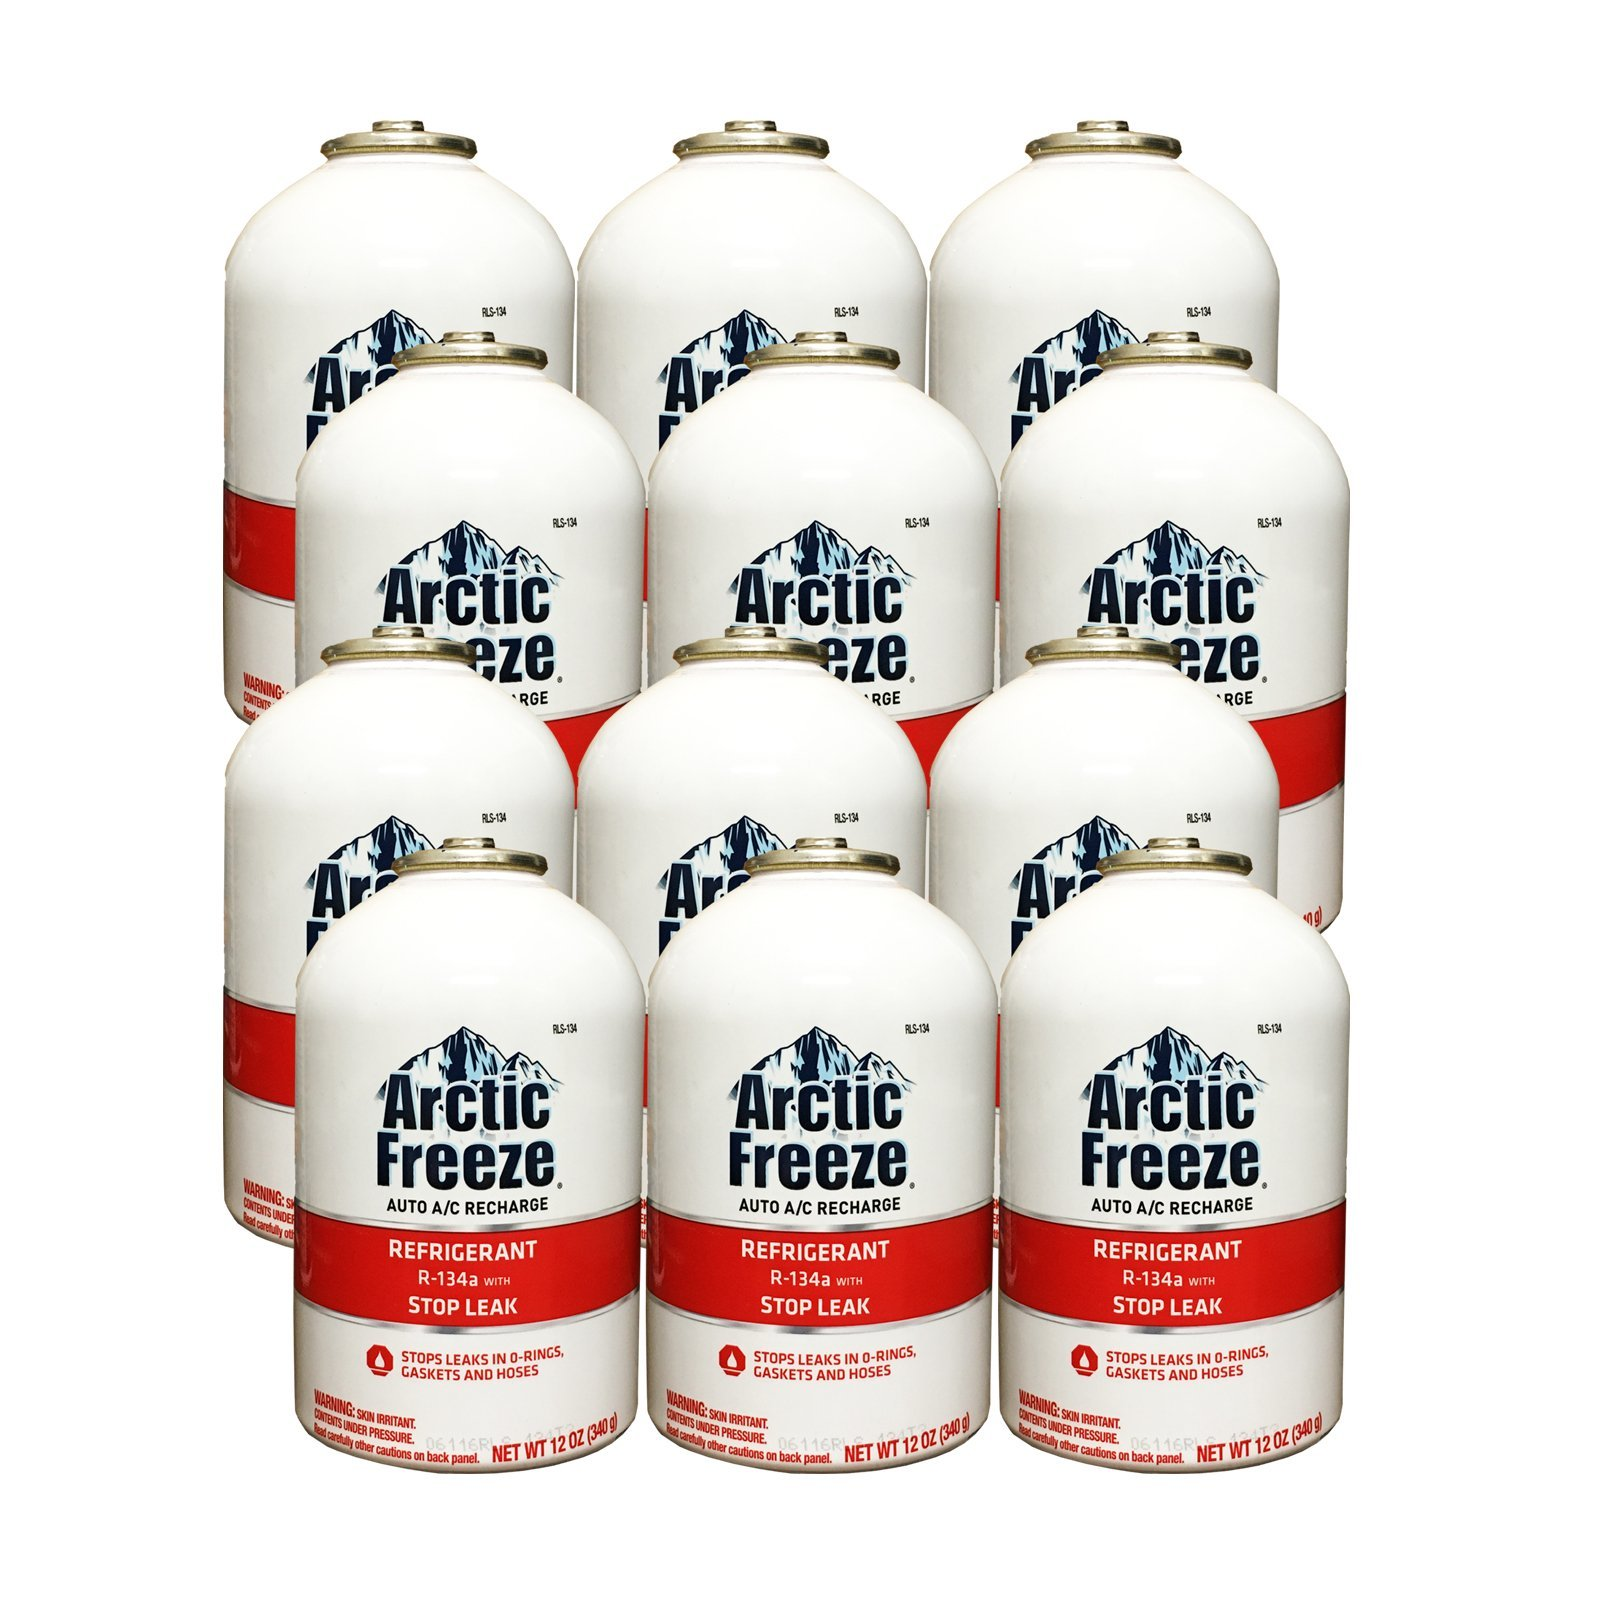 Arctic Freeze (RLS-134T) Refrigerant R-134a with Stop Leak 12 oz (12 Cans) by ARCTIC